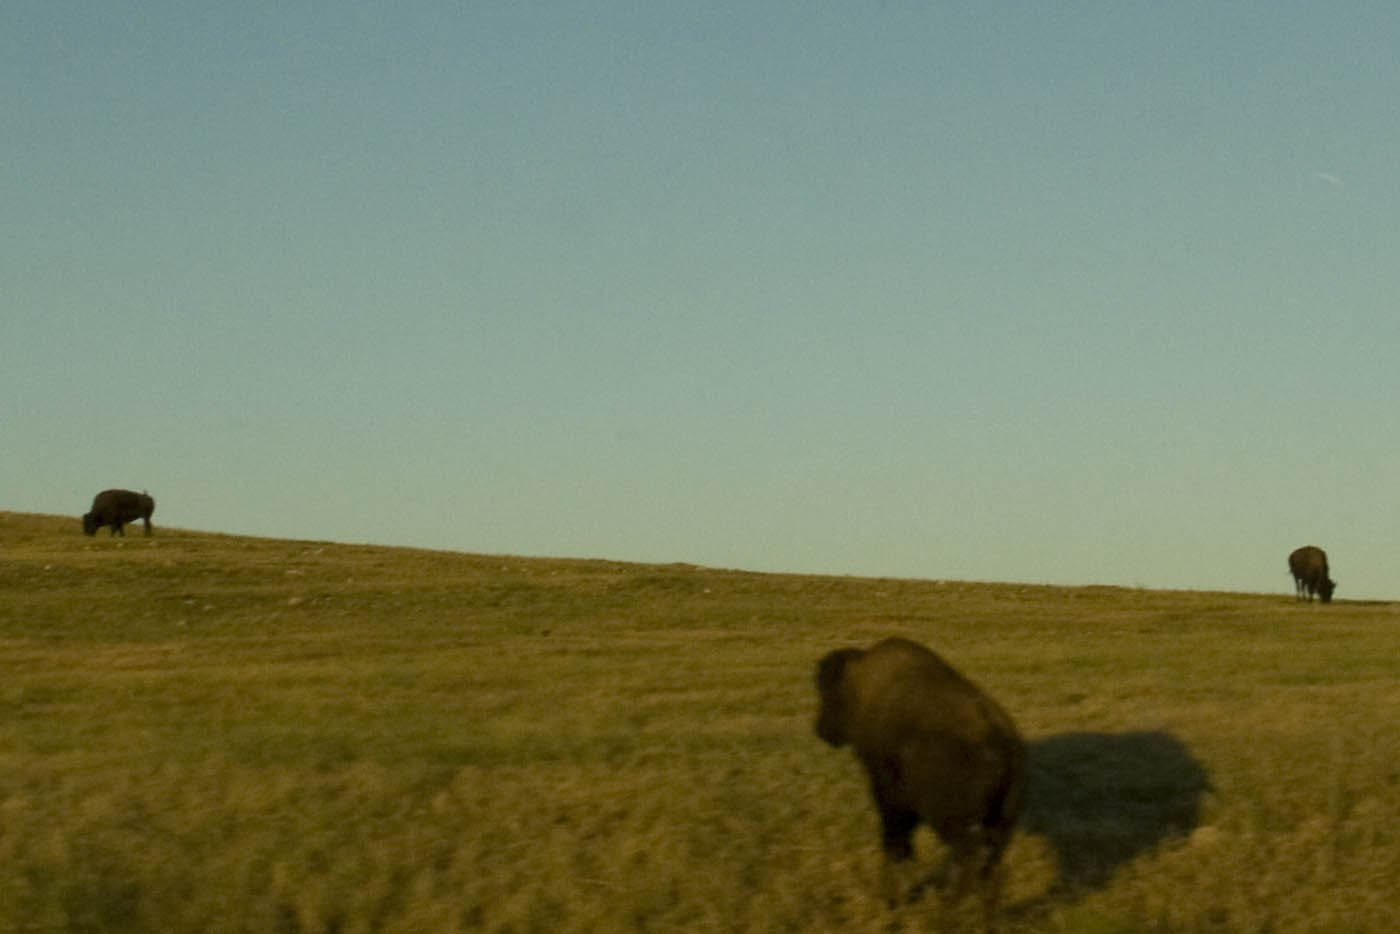 Buffalo roaming in South Dakota. Labor Day Chicago to Mount Rushmore Road Trip.